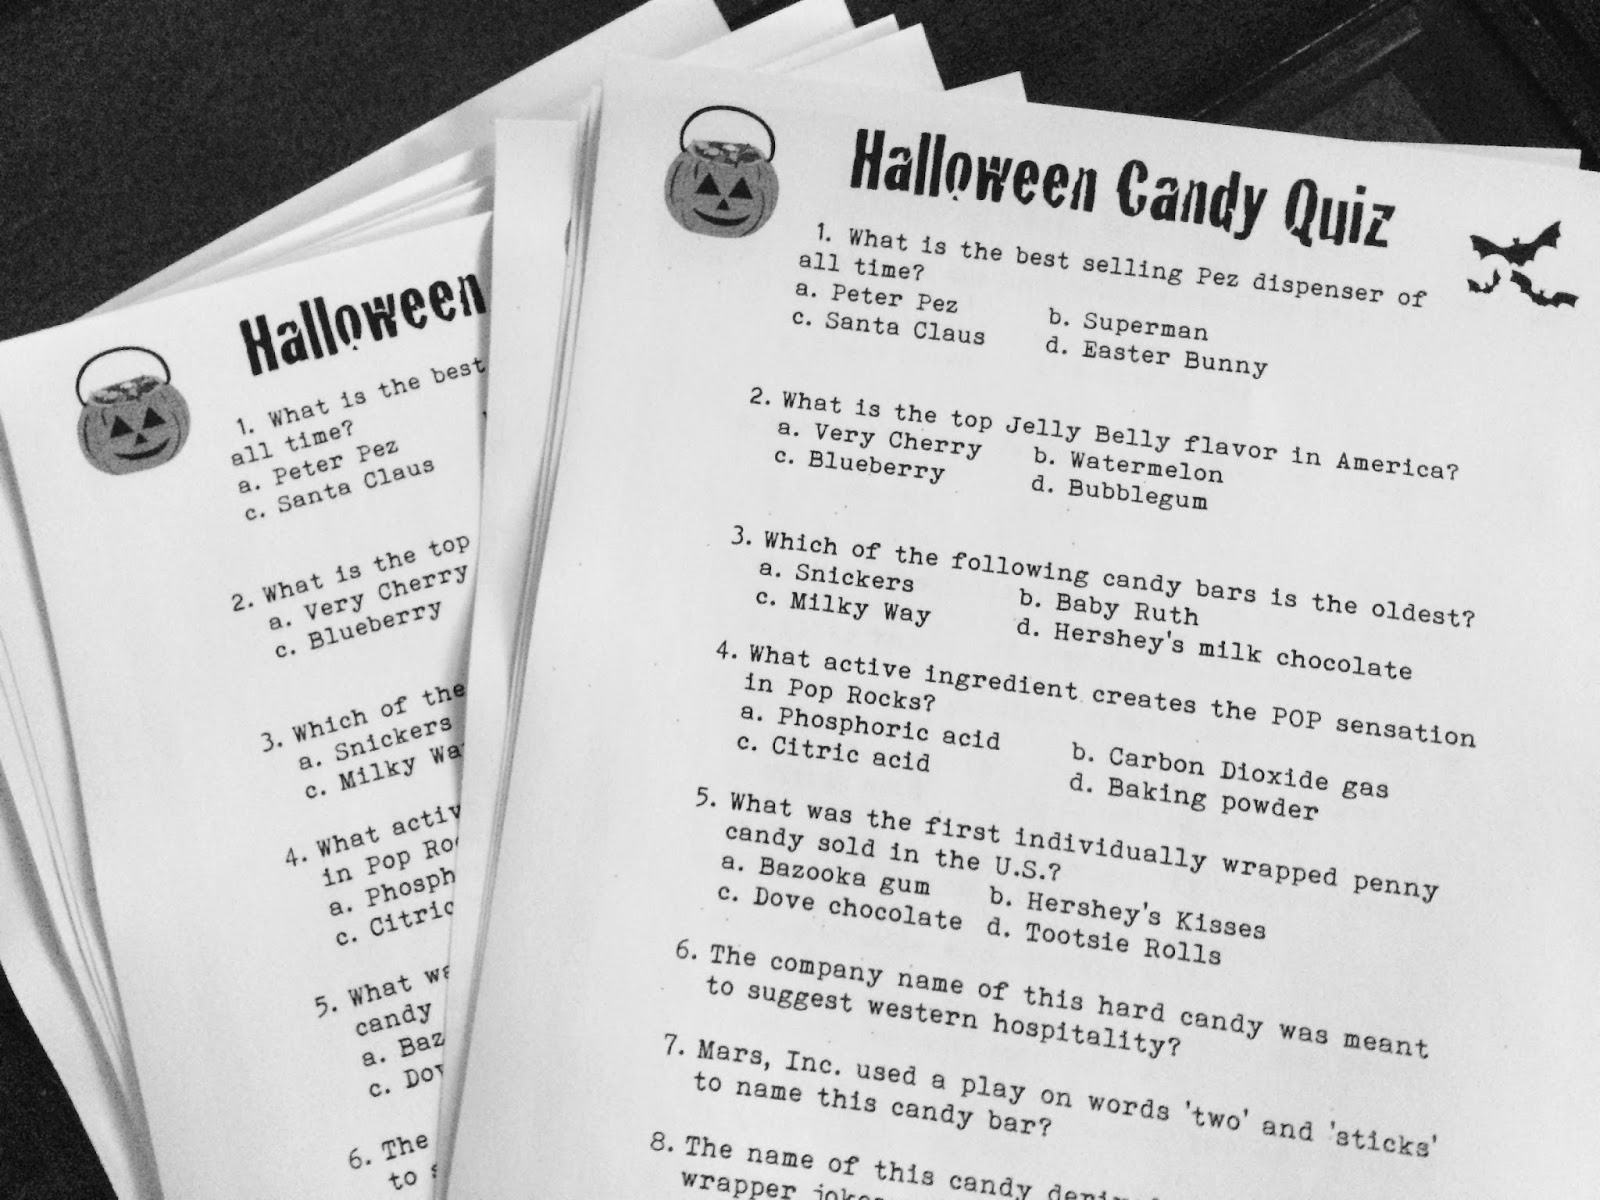 Marci Coombs: Halloween Candy Quiz 2015.